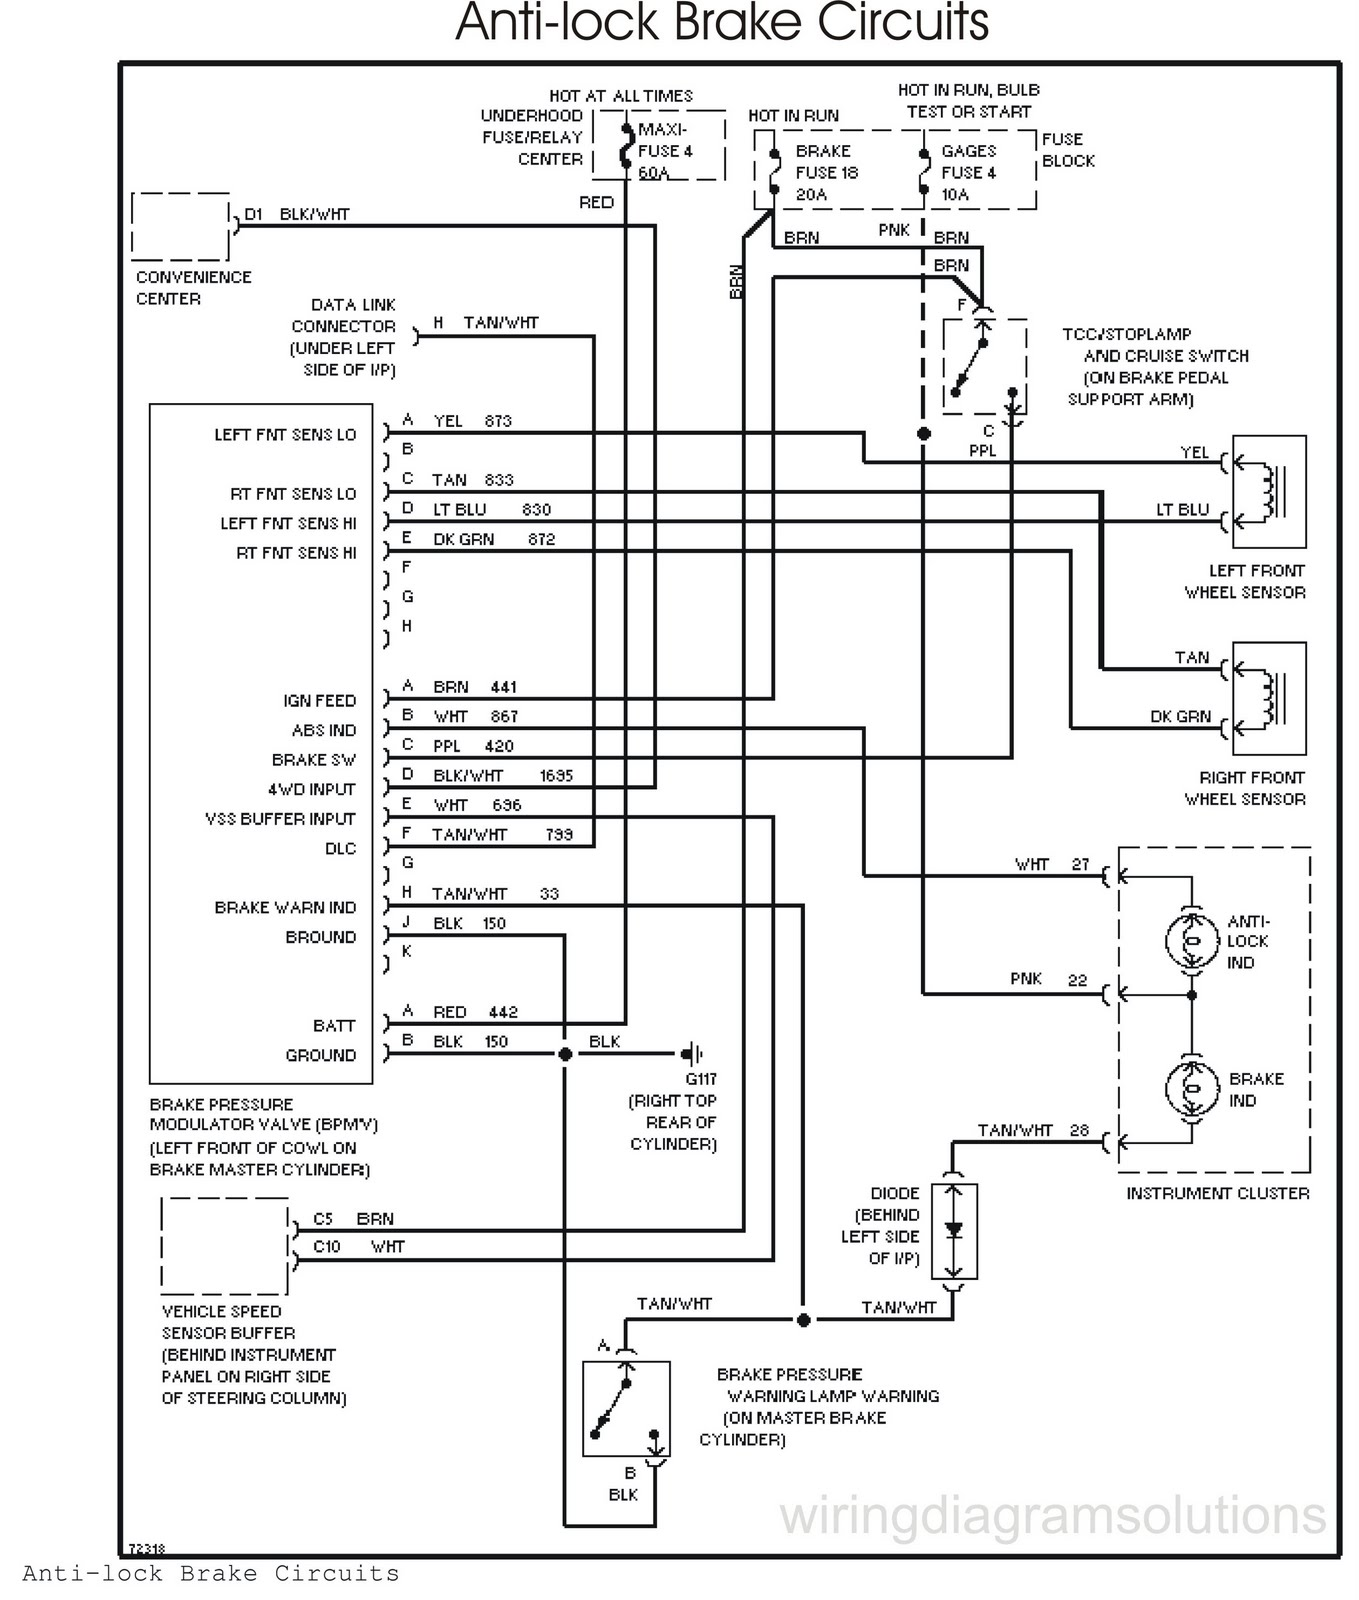 hight resolution of 98 tahoe ignition switch wiring diagram